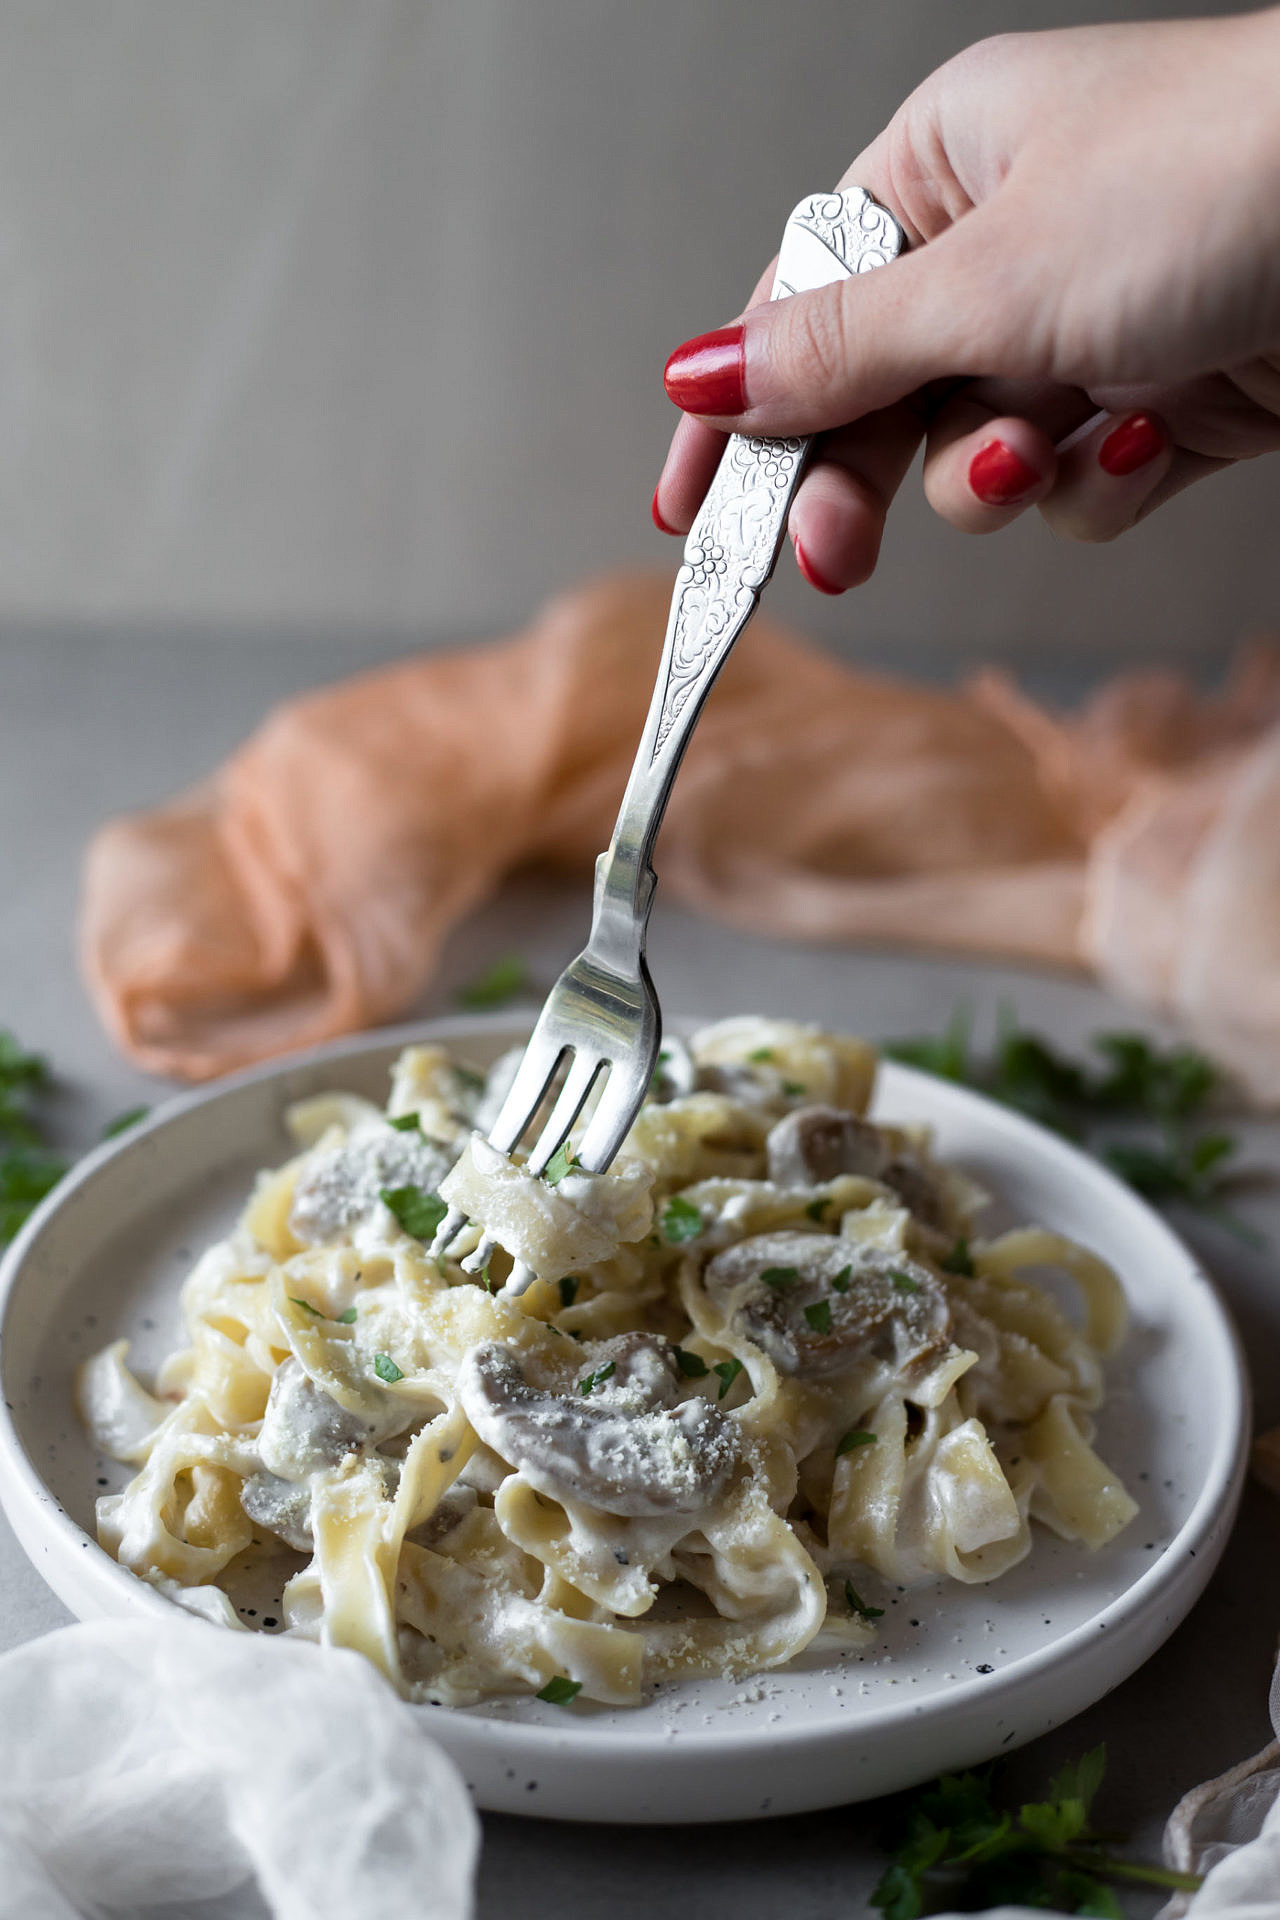 This Low FODMAP Mushroom Fettuccine is super creamy, flavorful and so delicious. Moreover is easy to digest and makes a filling lunch or dinner.